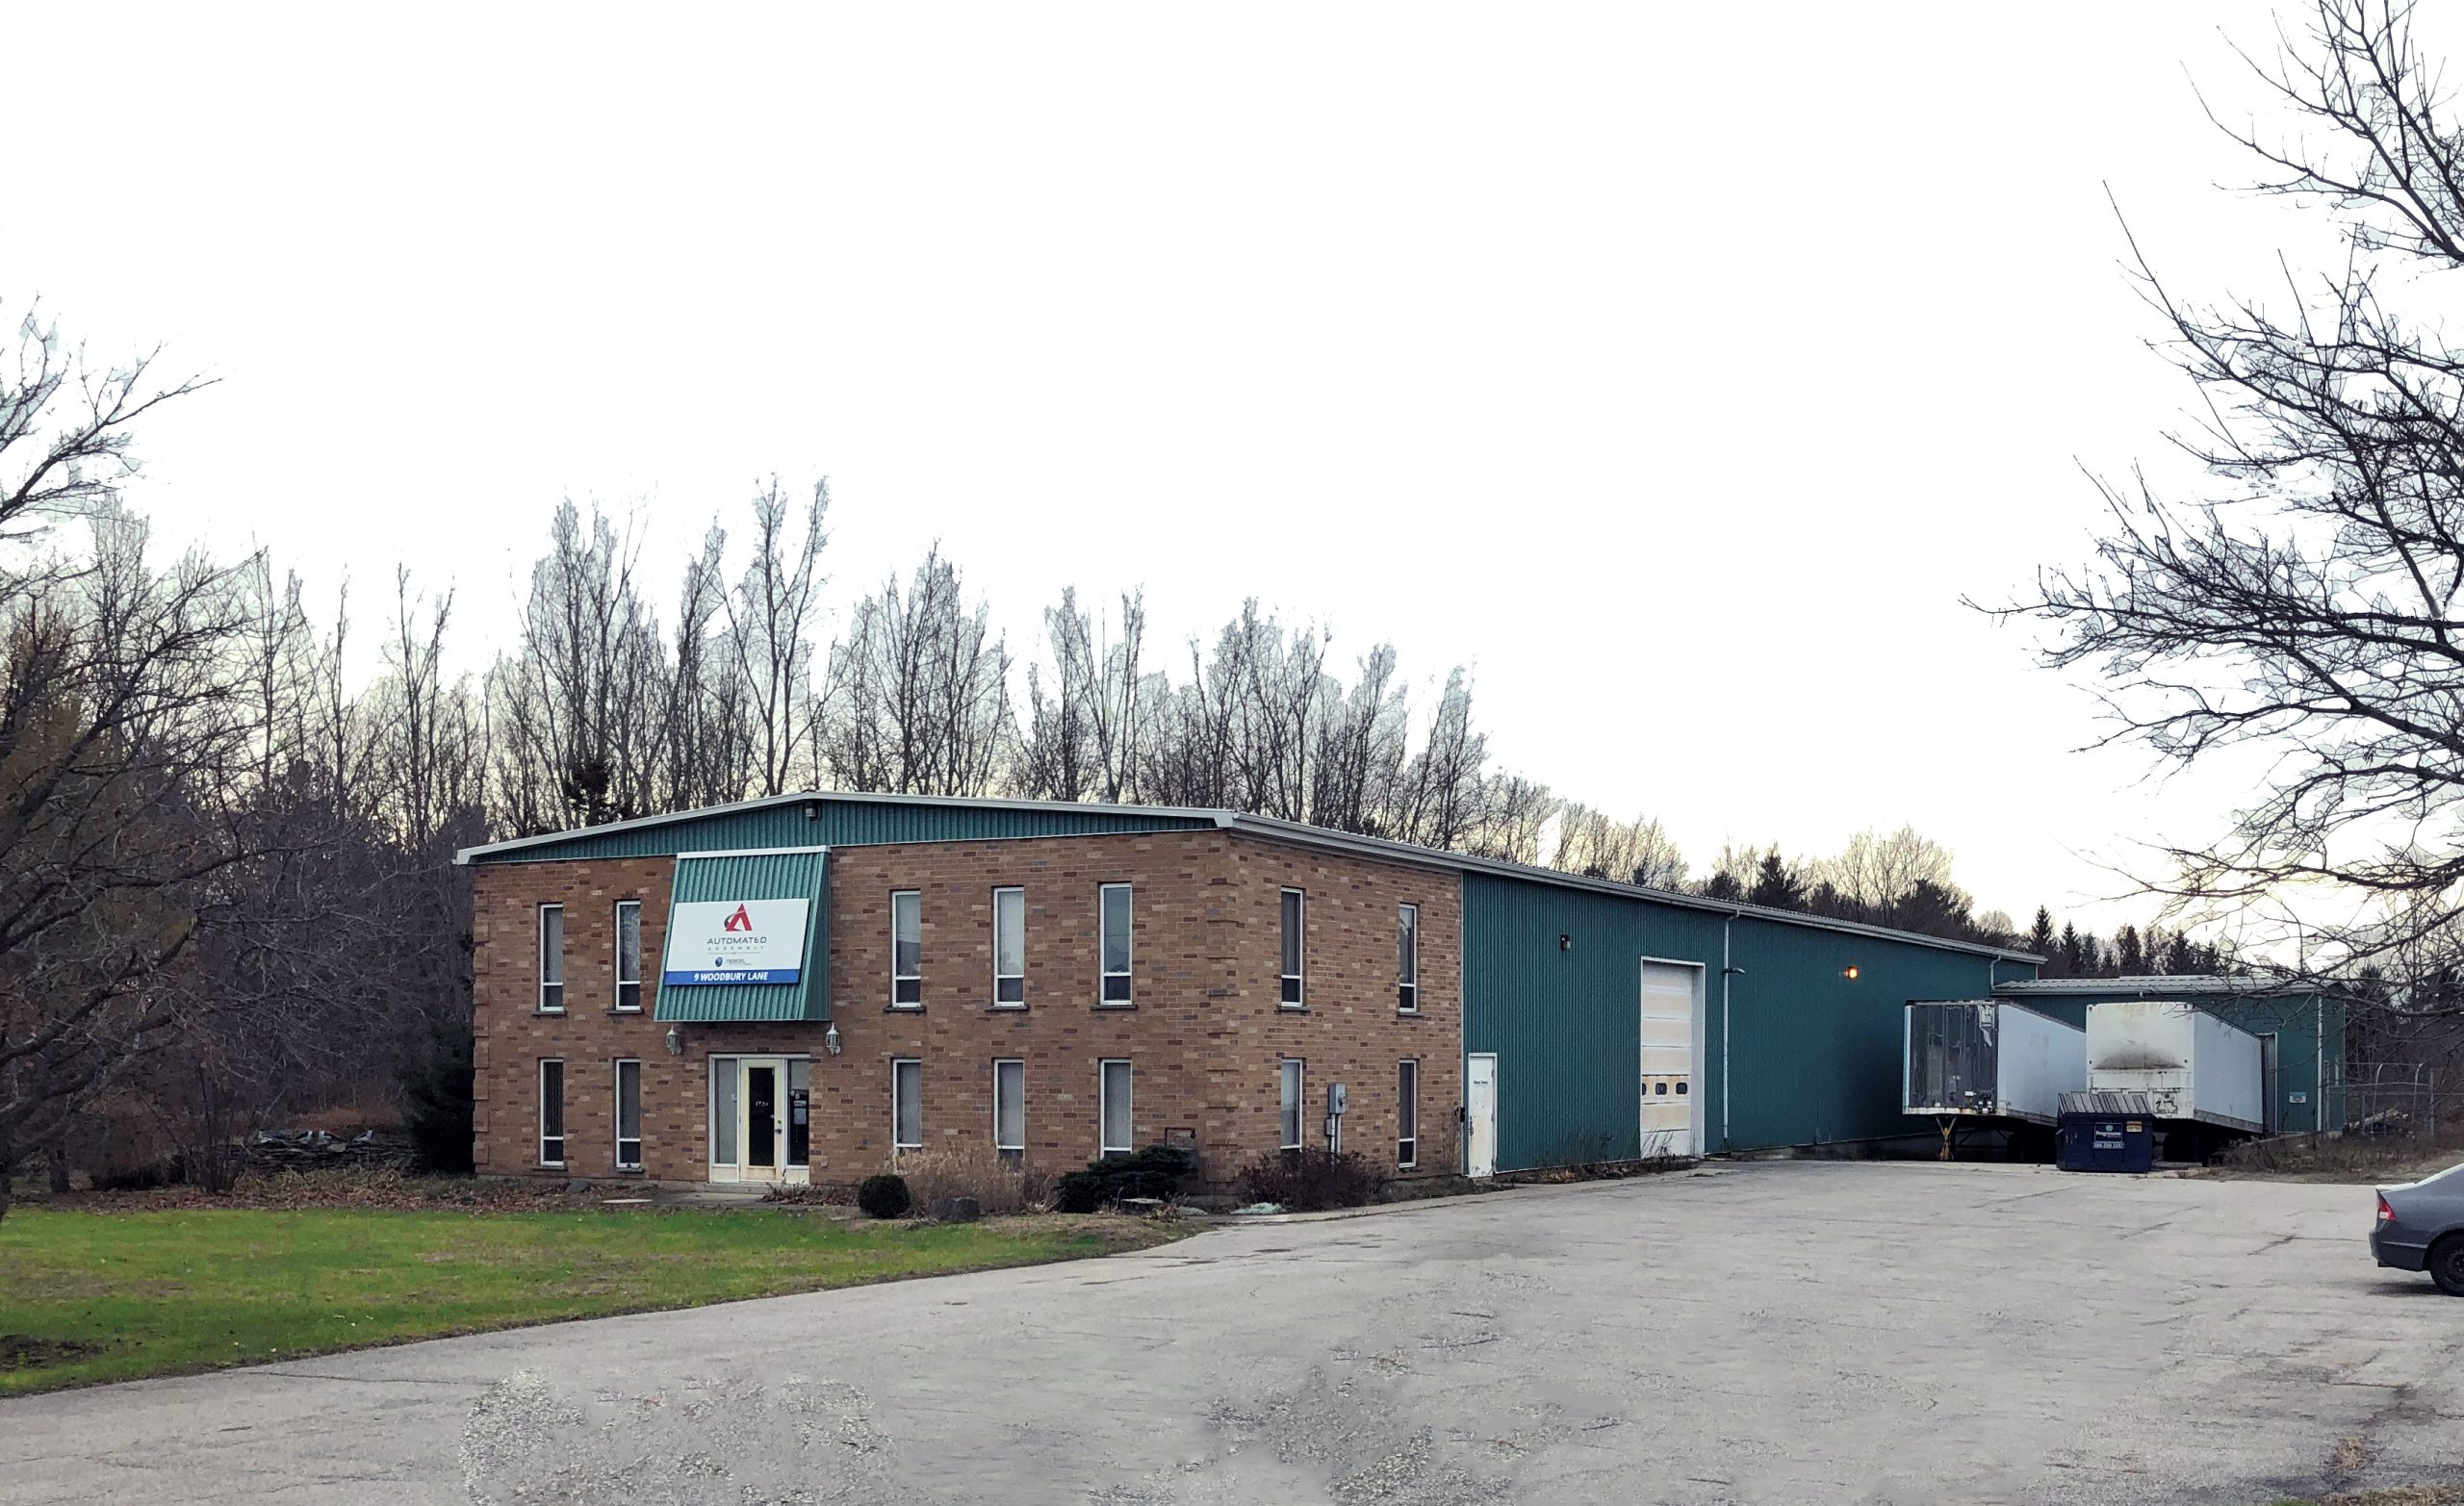 9 Woodbury Lane, Princeton | Industrial Building Available For Sale